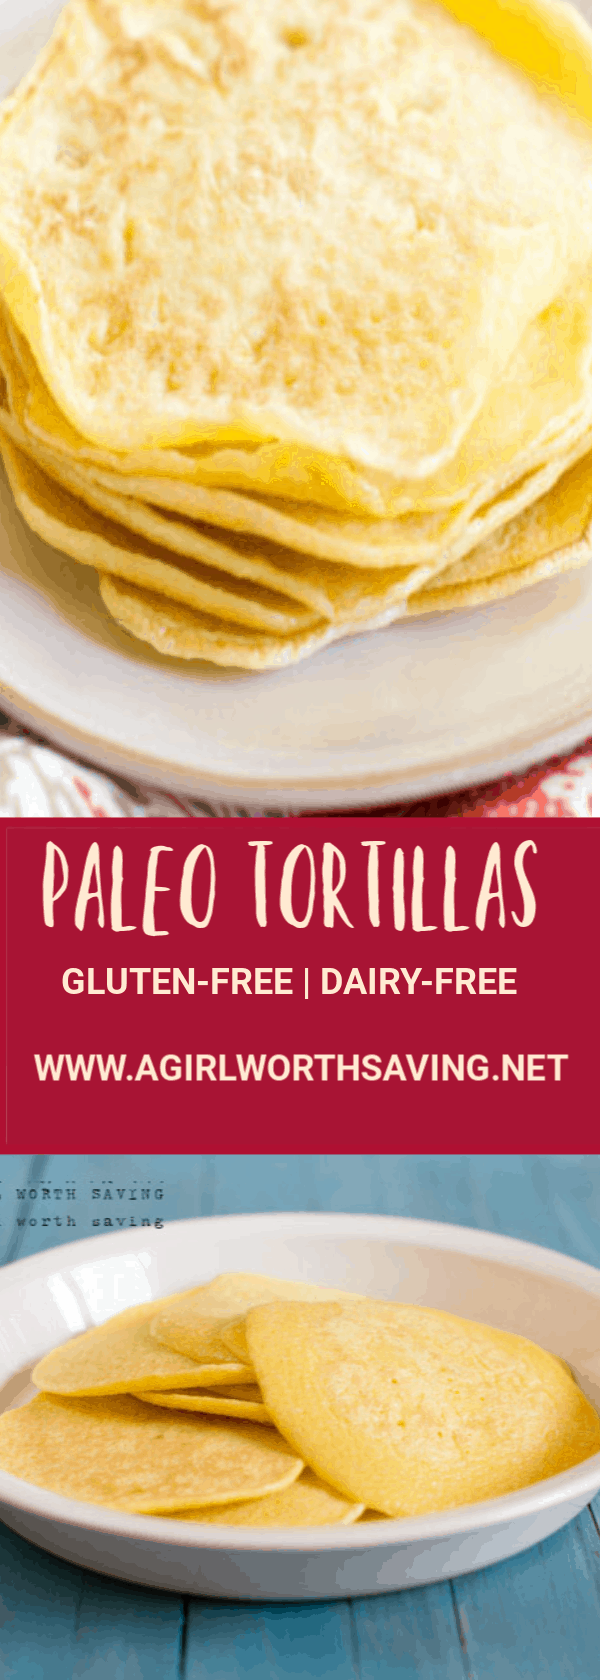 Ready to enjoy a paleo burrito made with these foldable paleo tortillas? This simple wraps recipe is made with less than 10 ingredients and holds up under a pile of sweet or savory fillings.